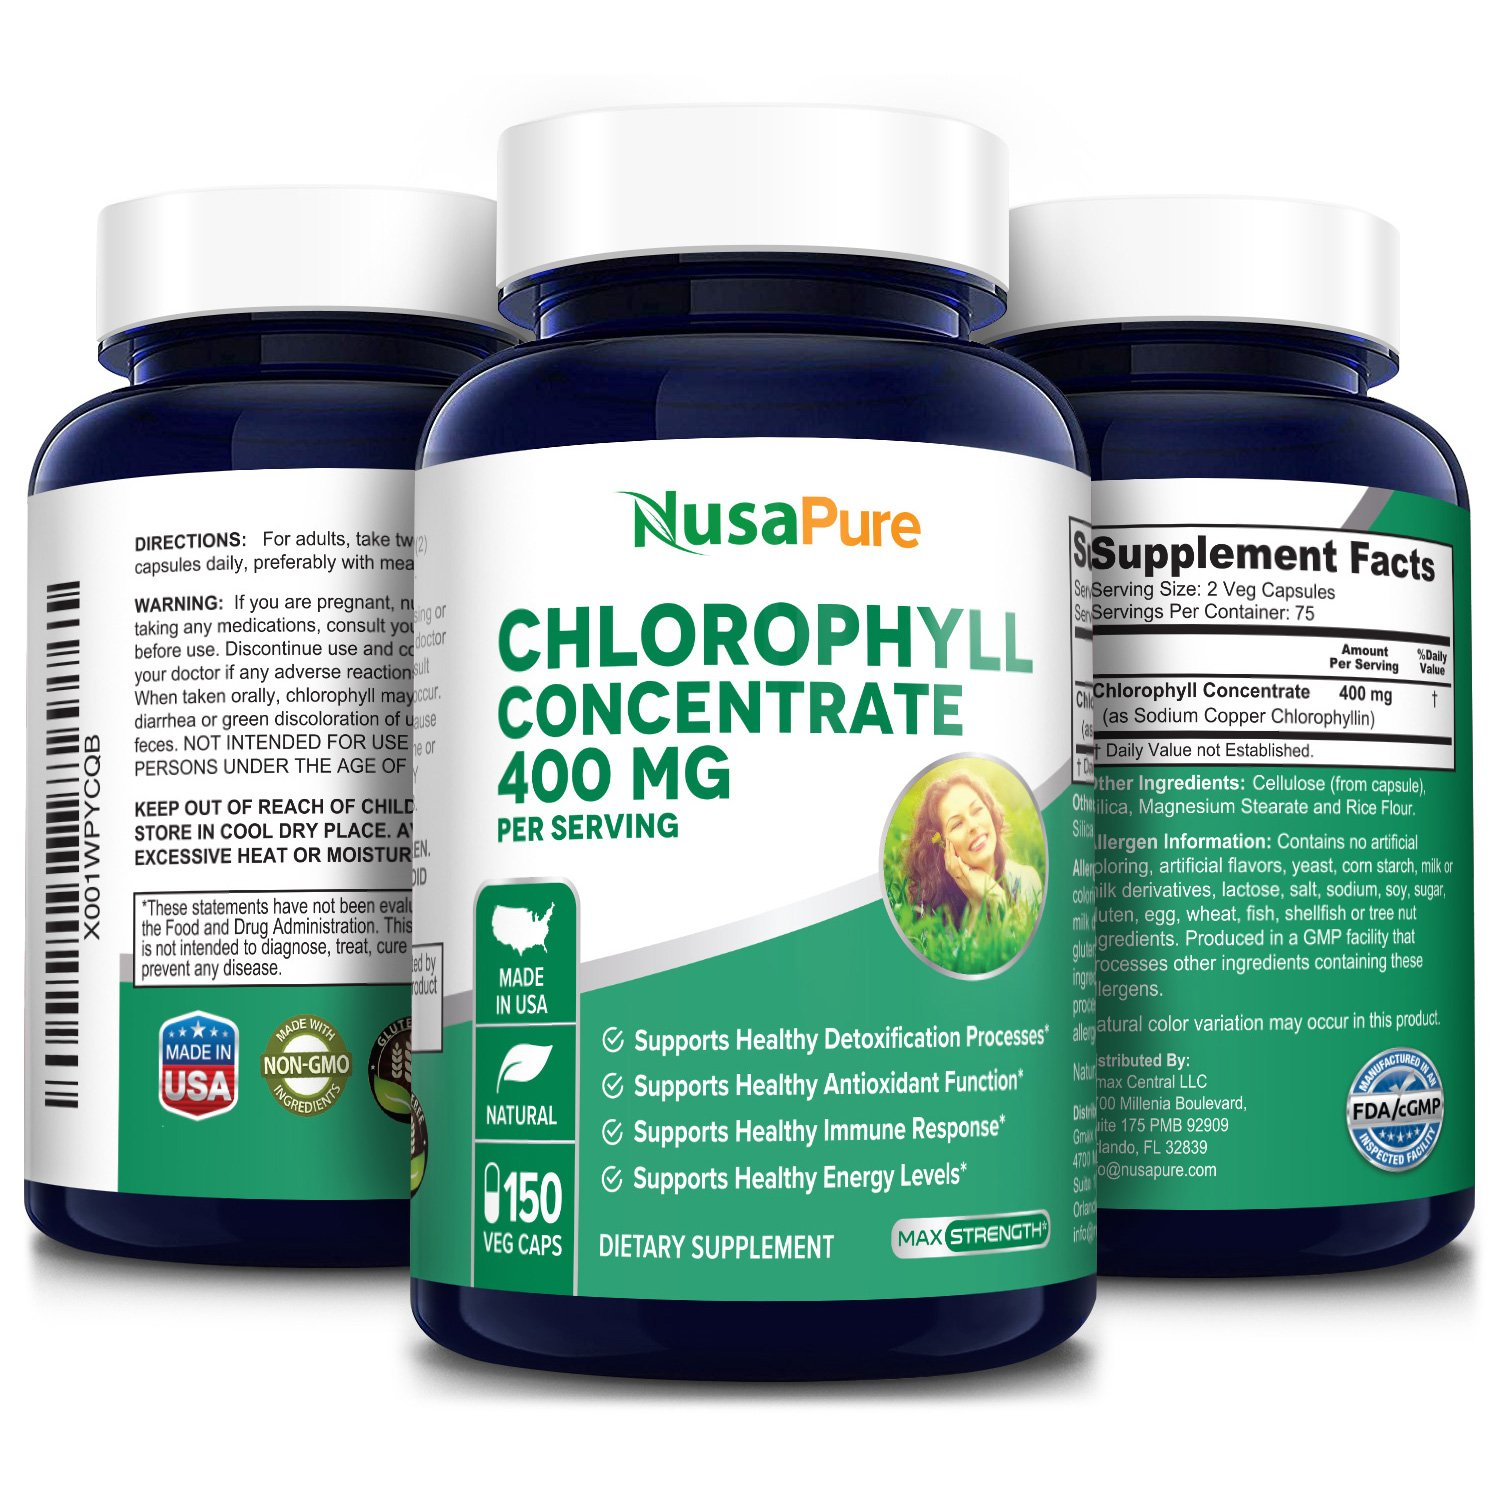 Chlorophyll Concentrate 400 mg -150 Veg Caps (100% Vegetarian, Non-GMO & Gluten-free)